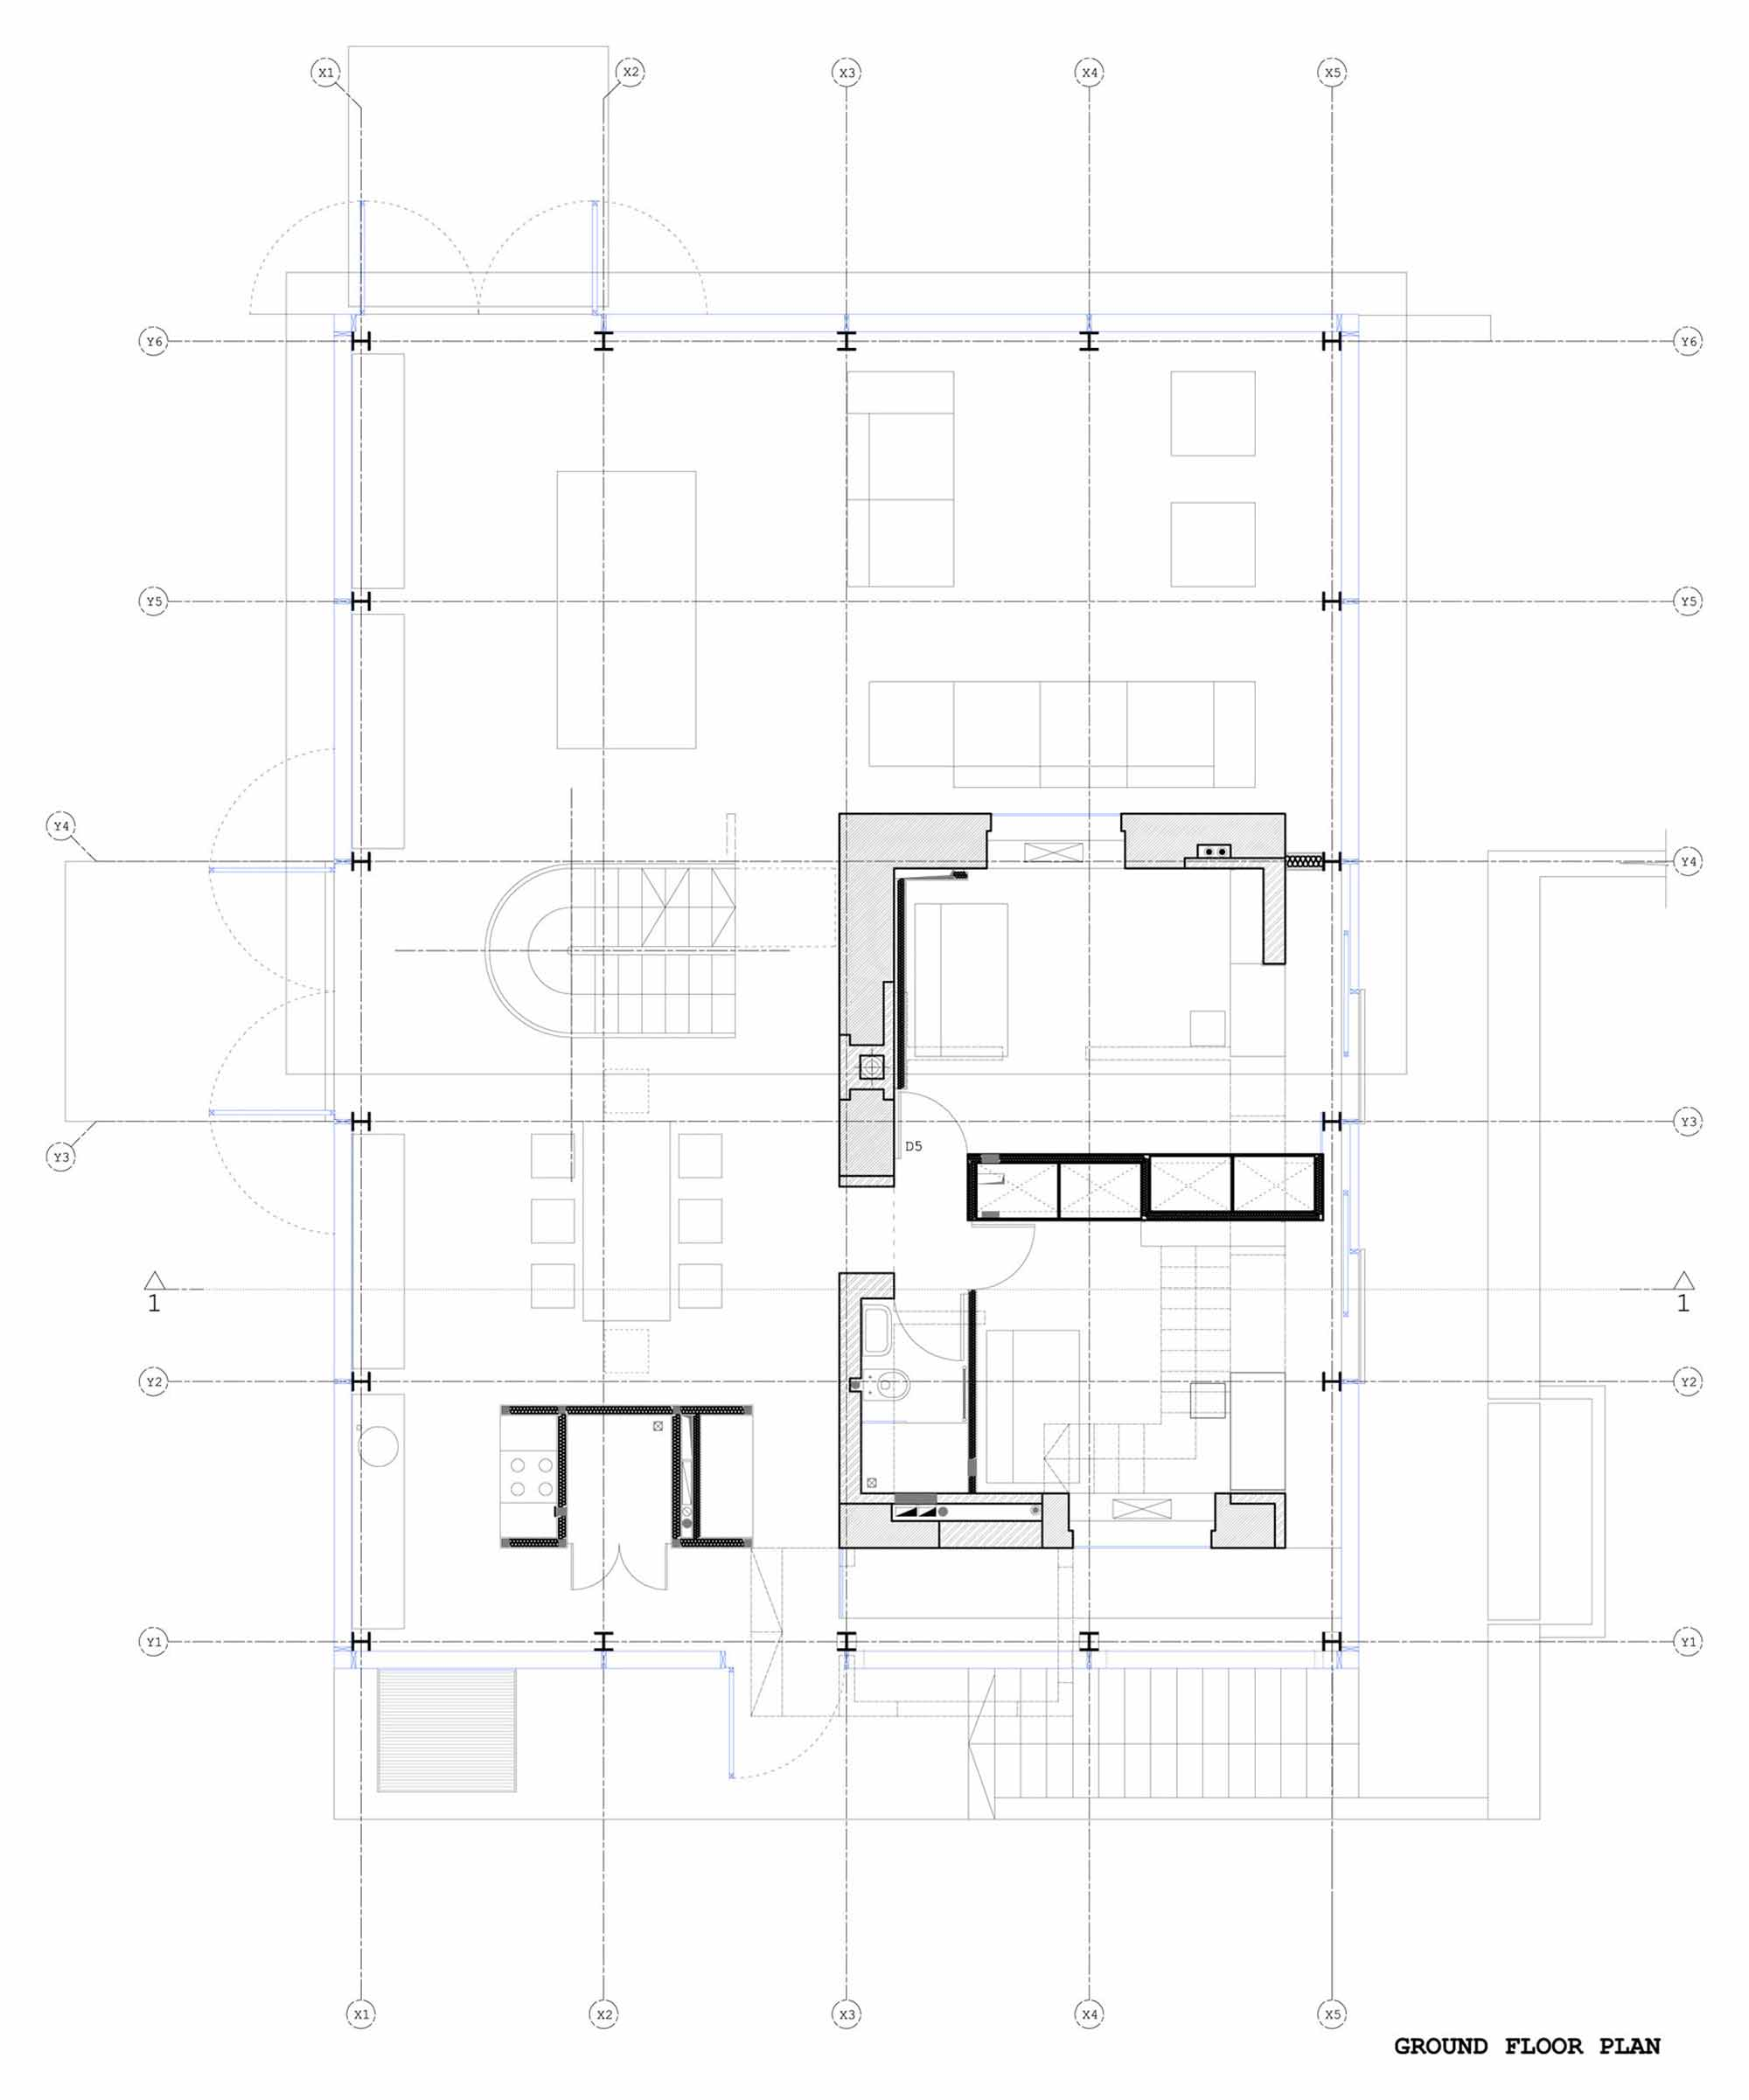 Ground Floor Plan, Glass House, Vilnius, Lithuania